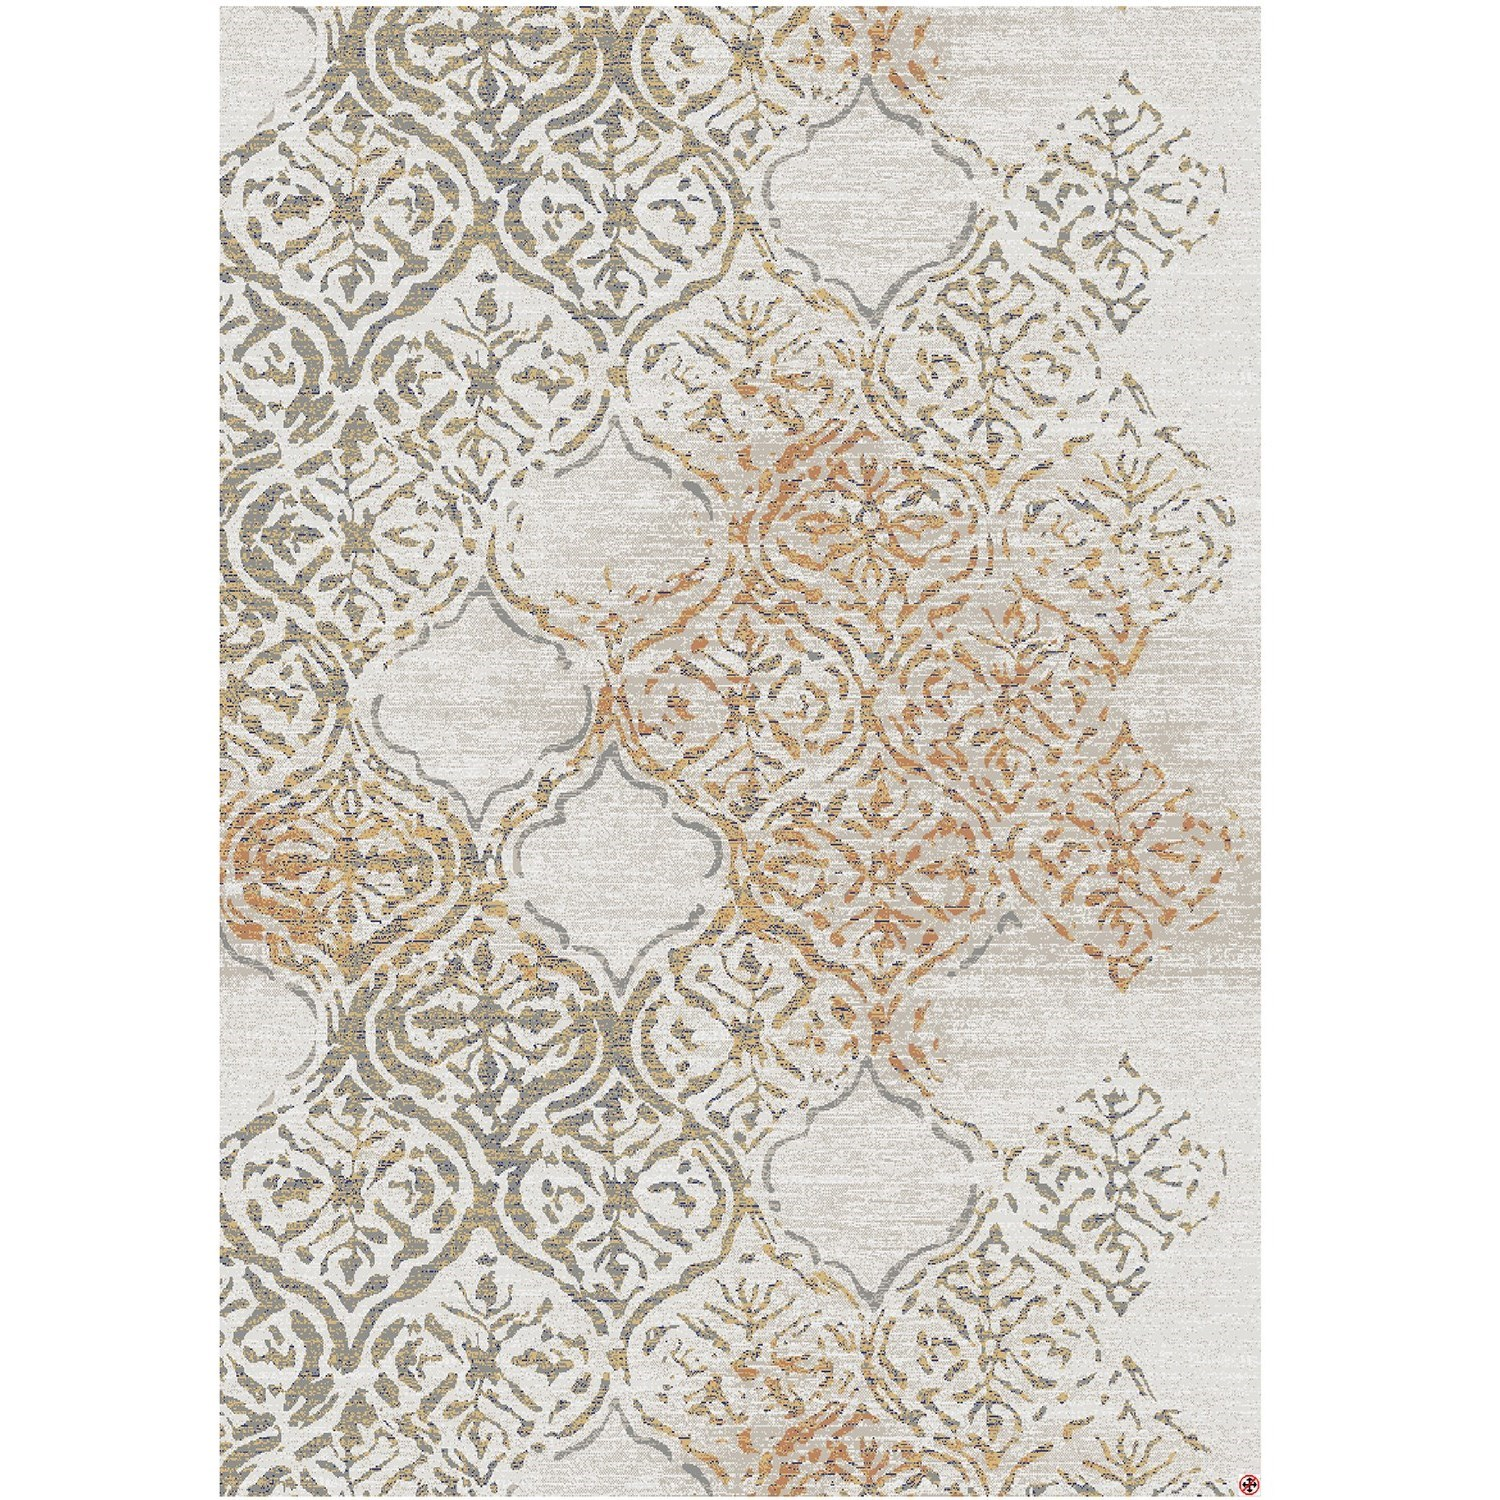 Cosmopolitan 8'x11' Rectangle Ornamental Area Rug by Karastan Rugs at Darvin Furniture